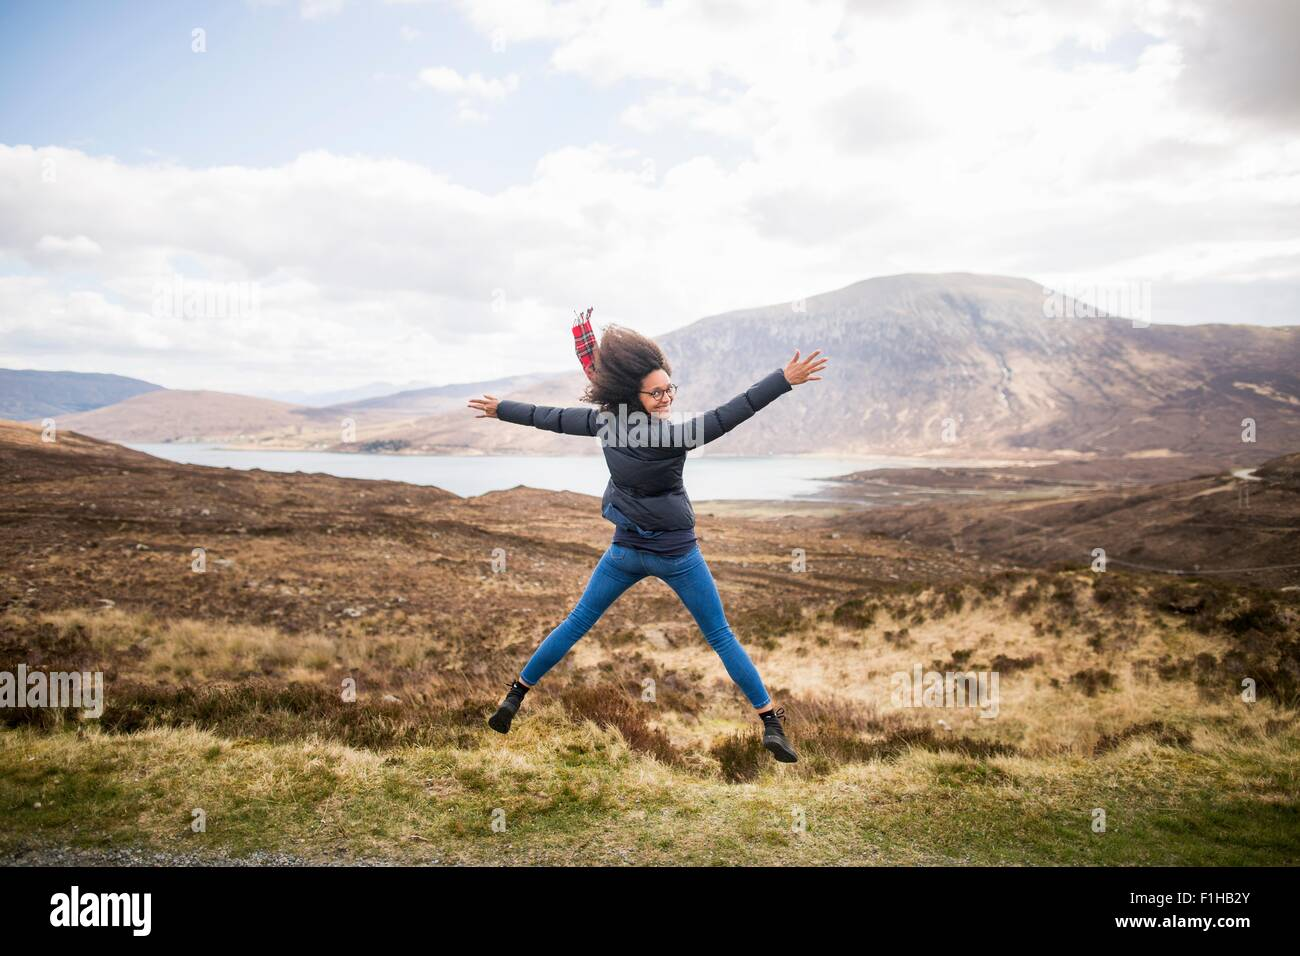 Mid adult woman in montagne faisant star jump, île de Skye, Hébrides, Ecosse Photo Stock